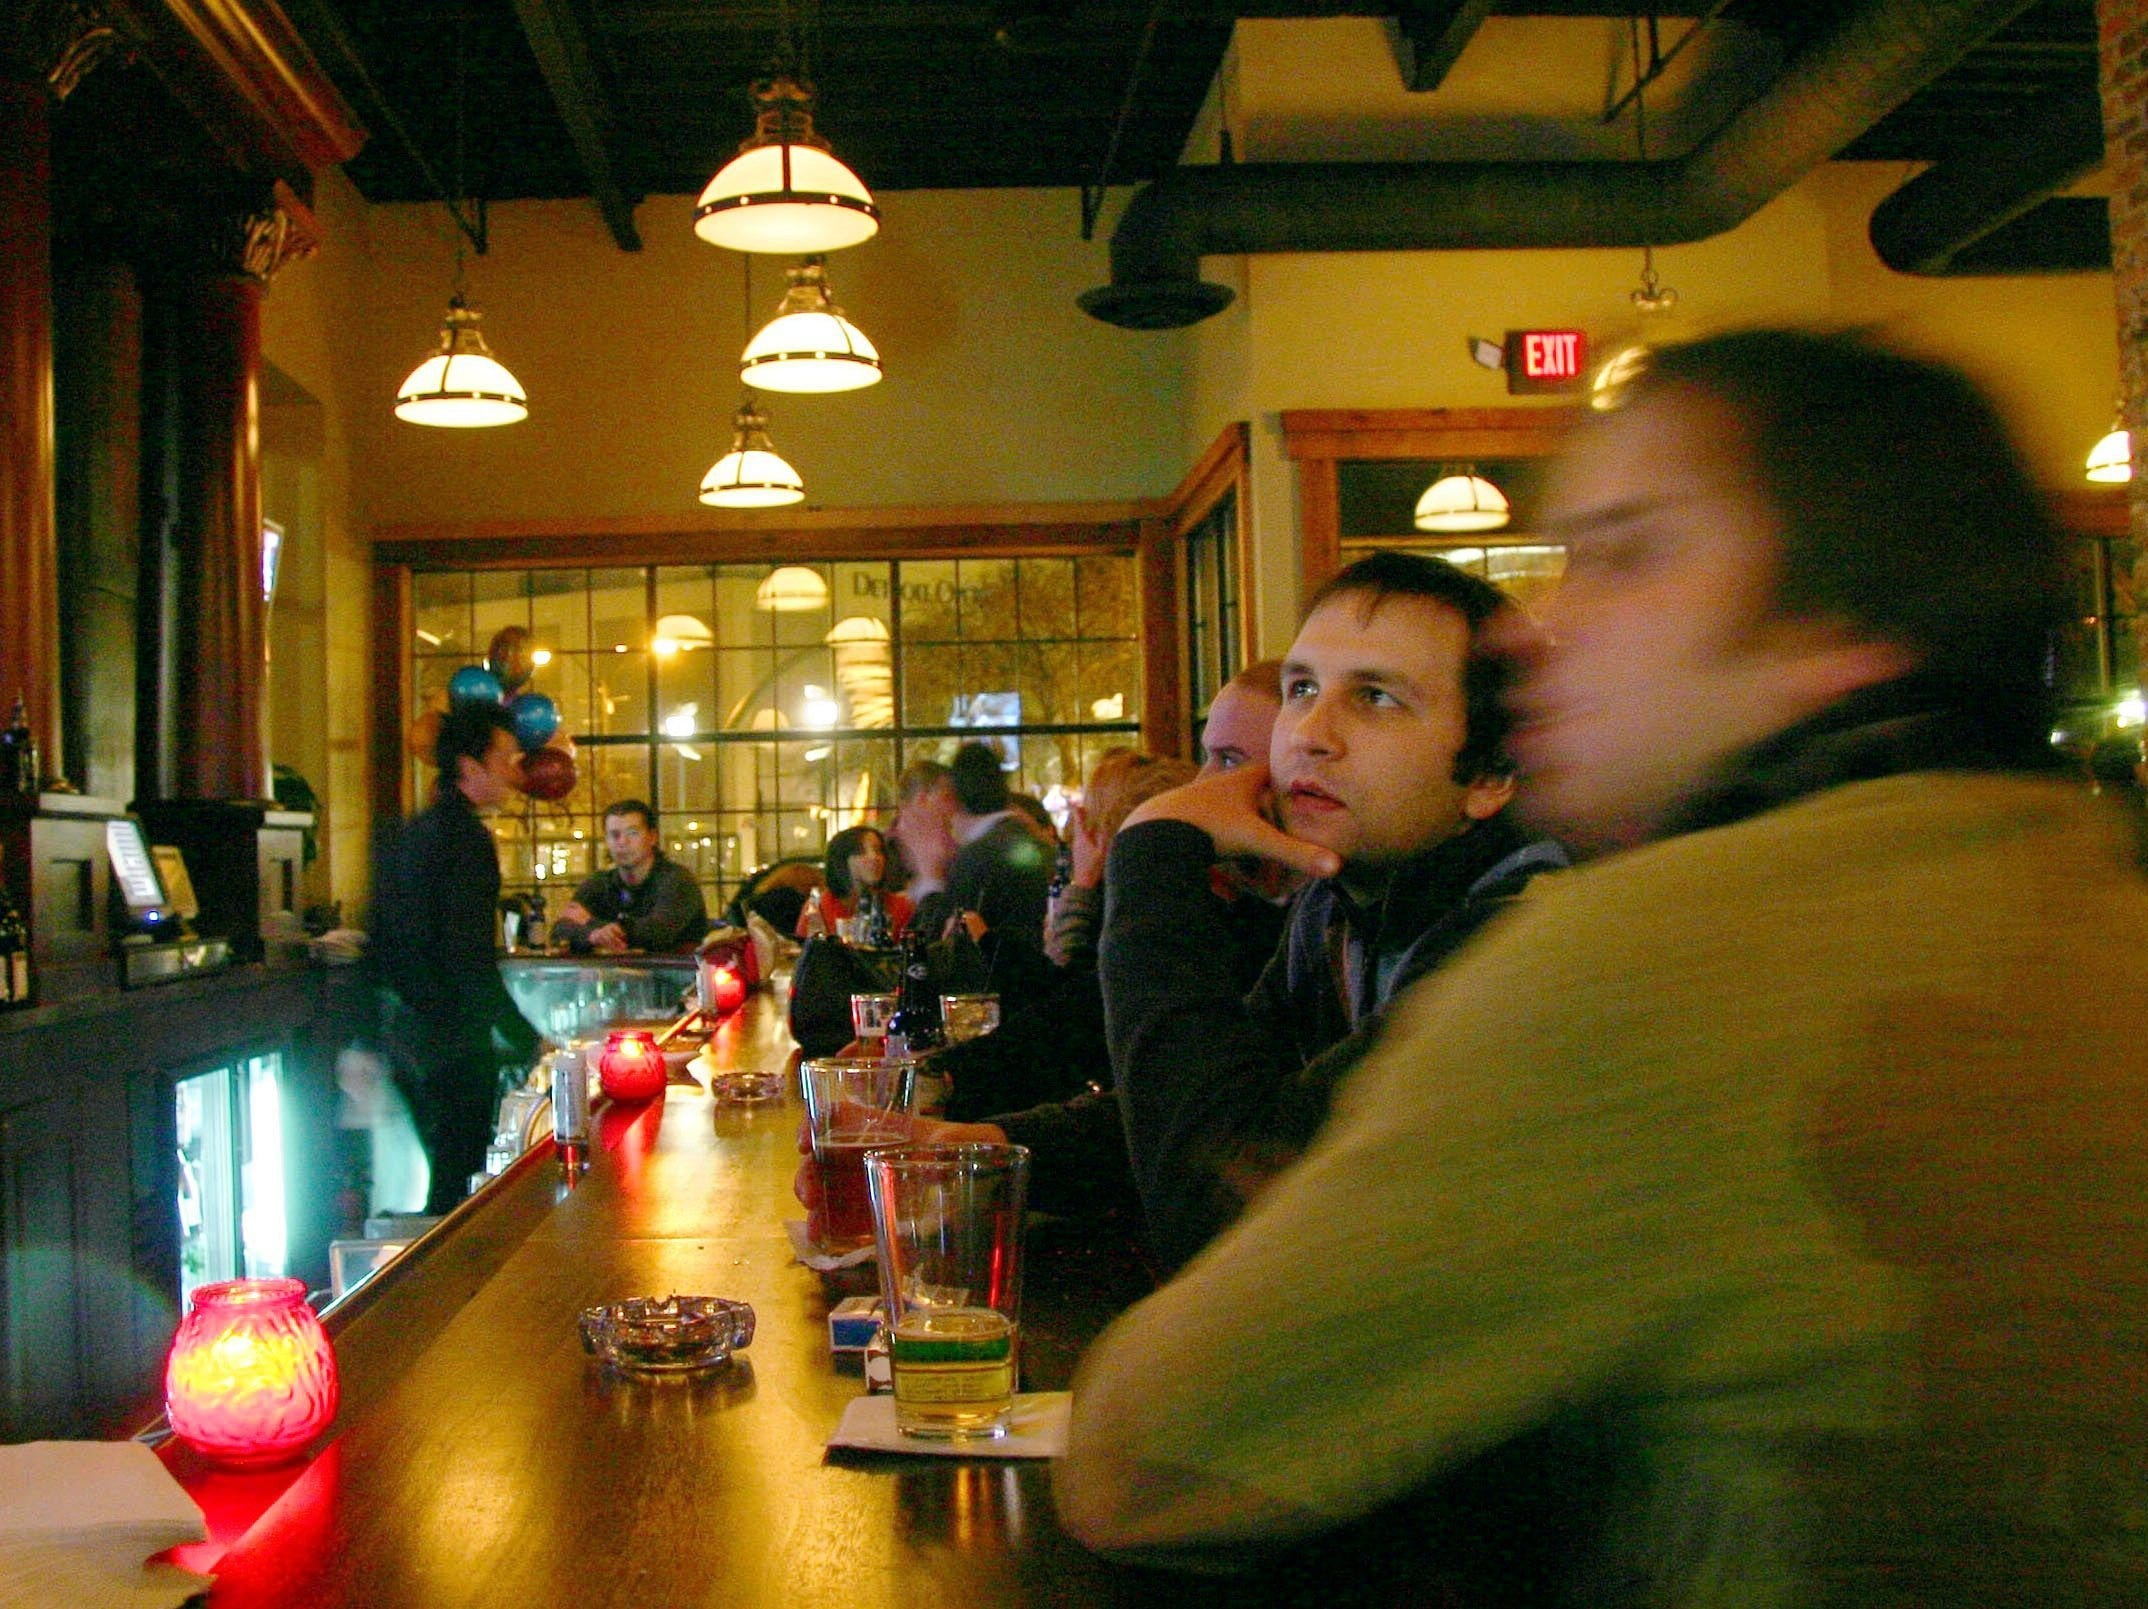 Eric Seitz, 25, of Bloomfield Hills, Vic Chelovich, 26, of Bloomfield Hills and Maggie McCafferty, 25, of Royal Oak came to Cheli's Chili Bar in Detroit for celebrate a friend's birthday and watch some television on February 18, 2006.